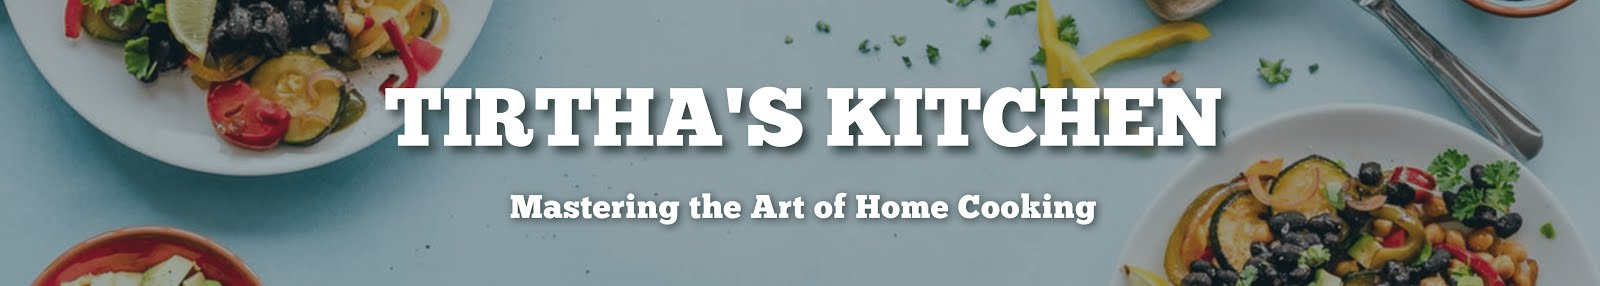 Tirtha's Kitchen - Mastering the Art of Home Cooking